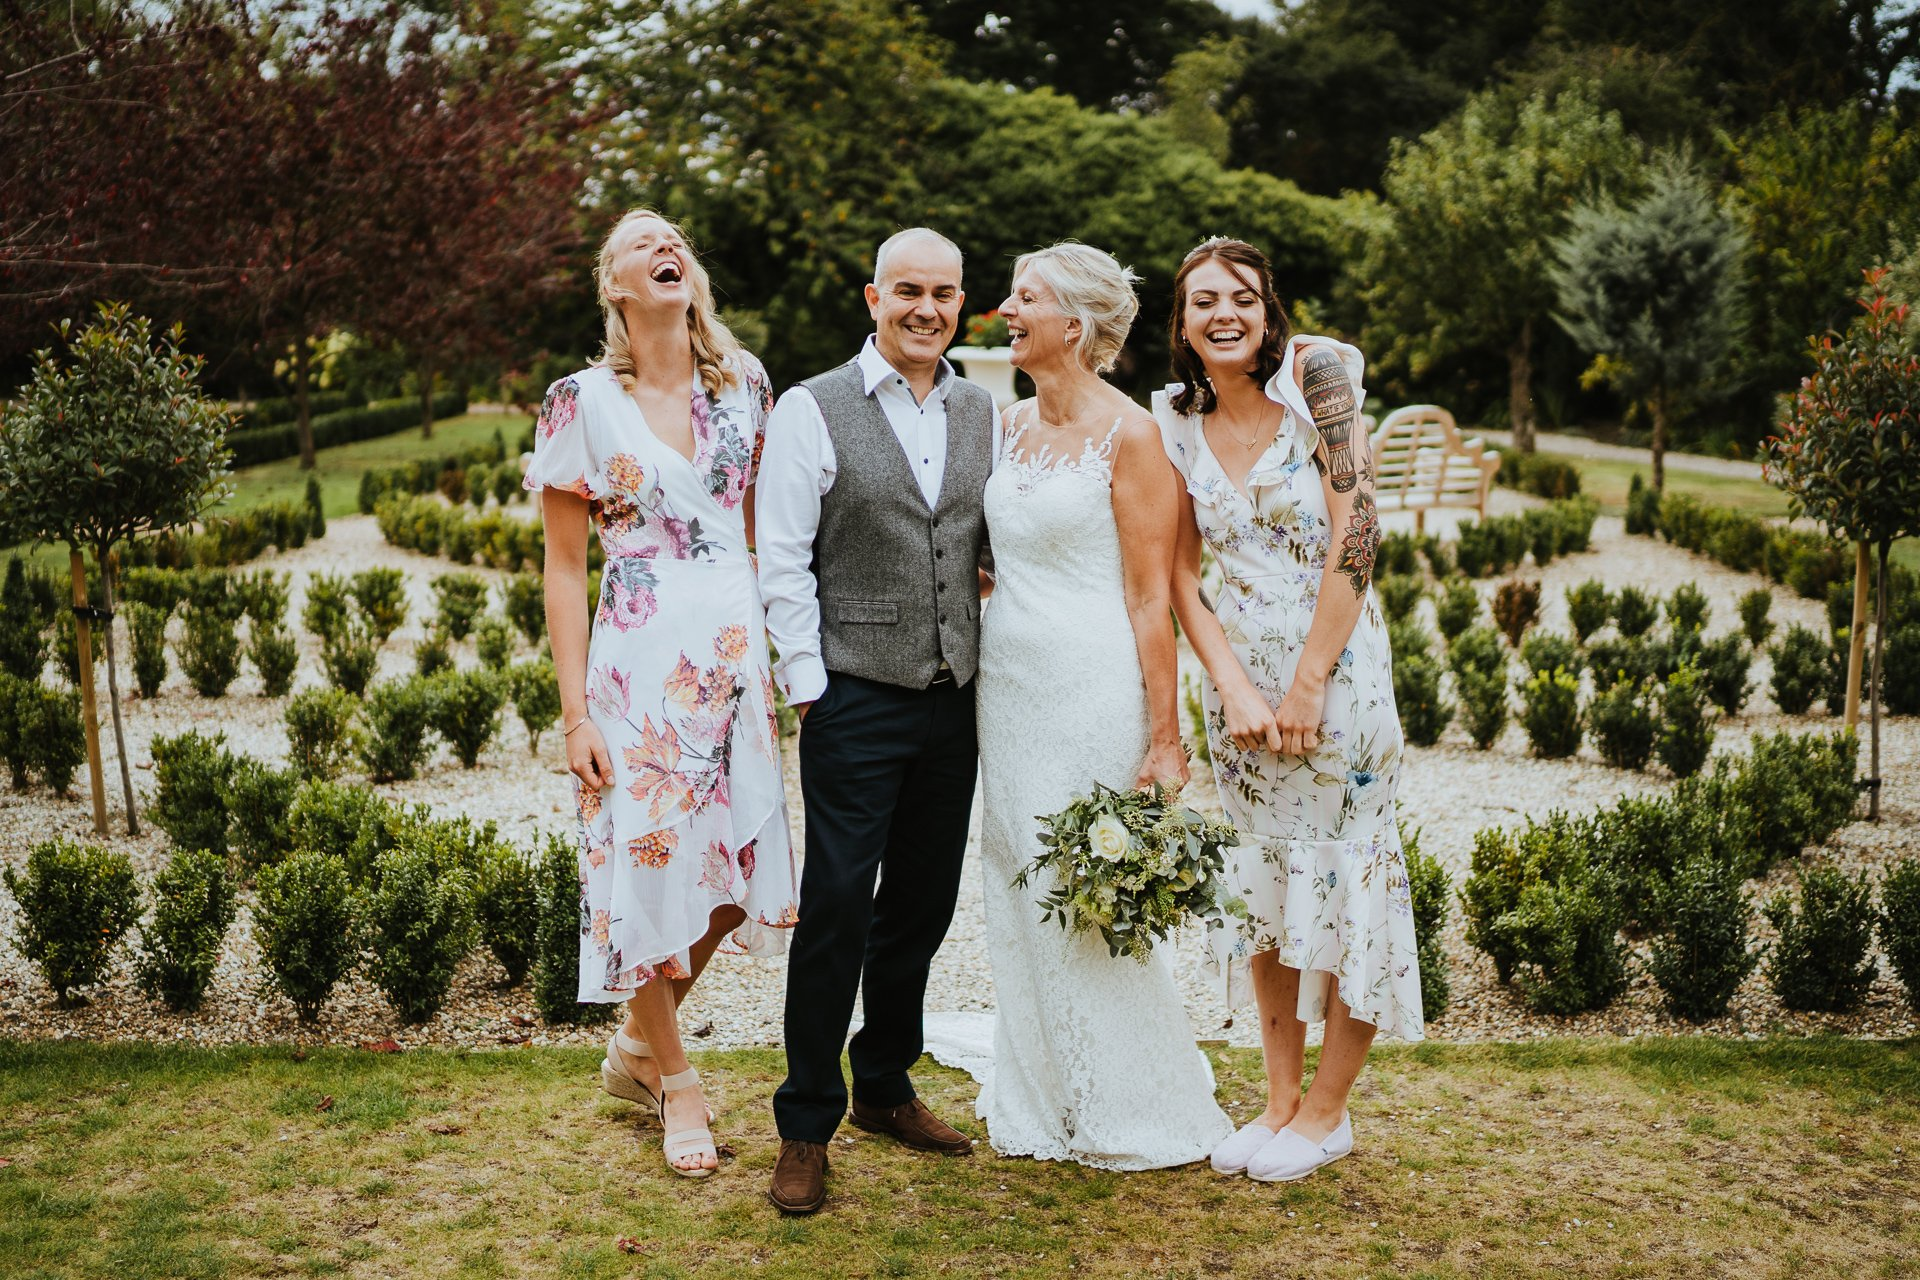 Bridal party laughing together at Secret Garden Wedding